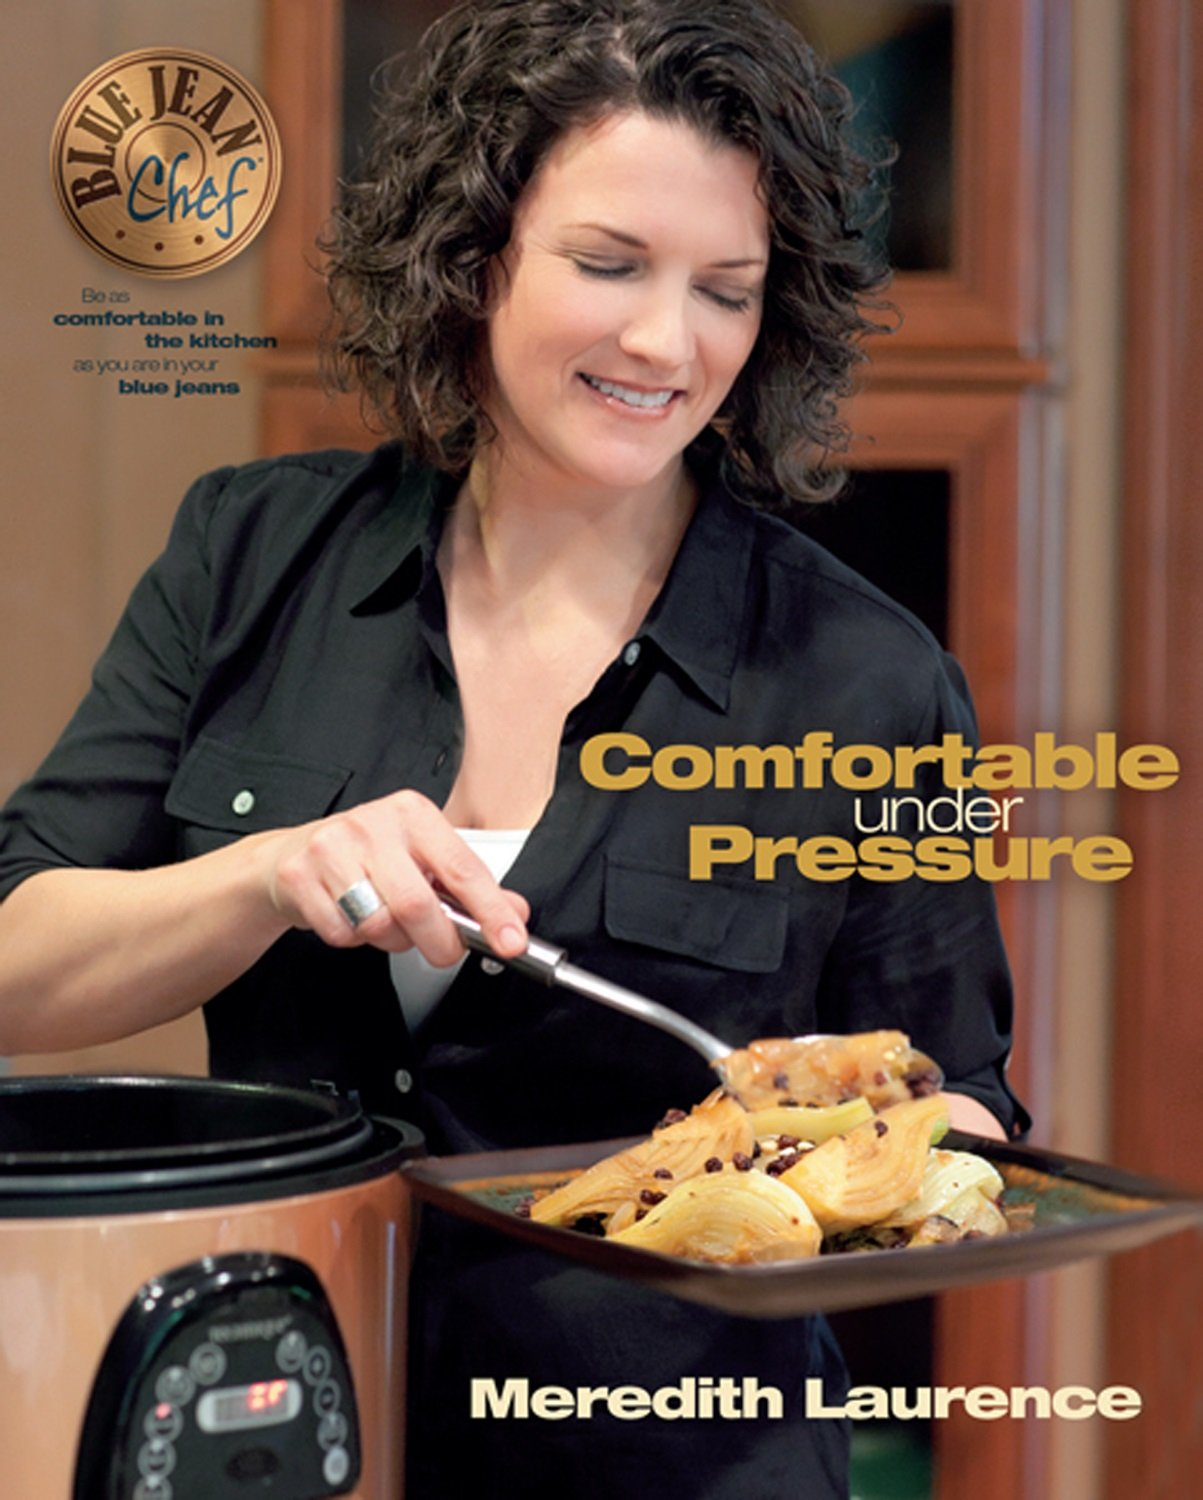 Comfortable Under Pressure: Pressure Cooker Meals: Recipes, Tips, and  Explanations (The Blue Jean Chef): Meredith Laurence: 9780982754016:  Amazon.com: Books